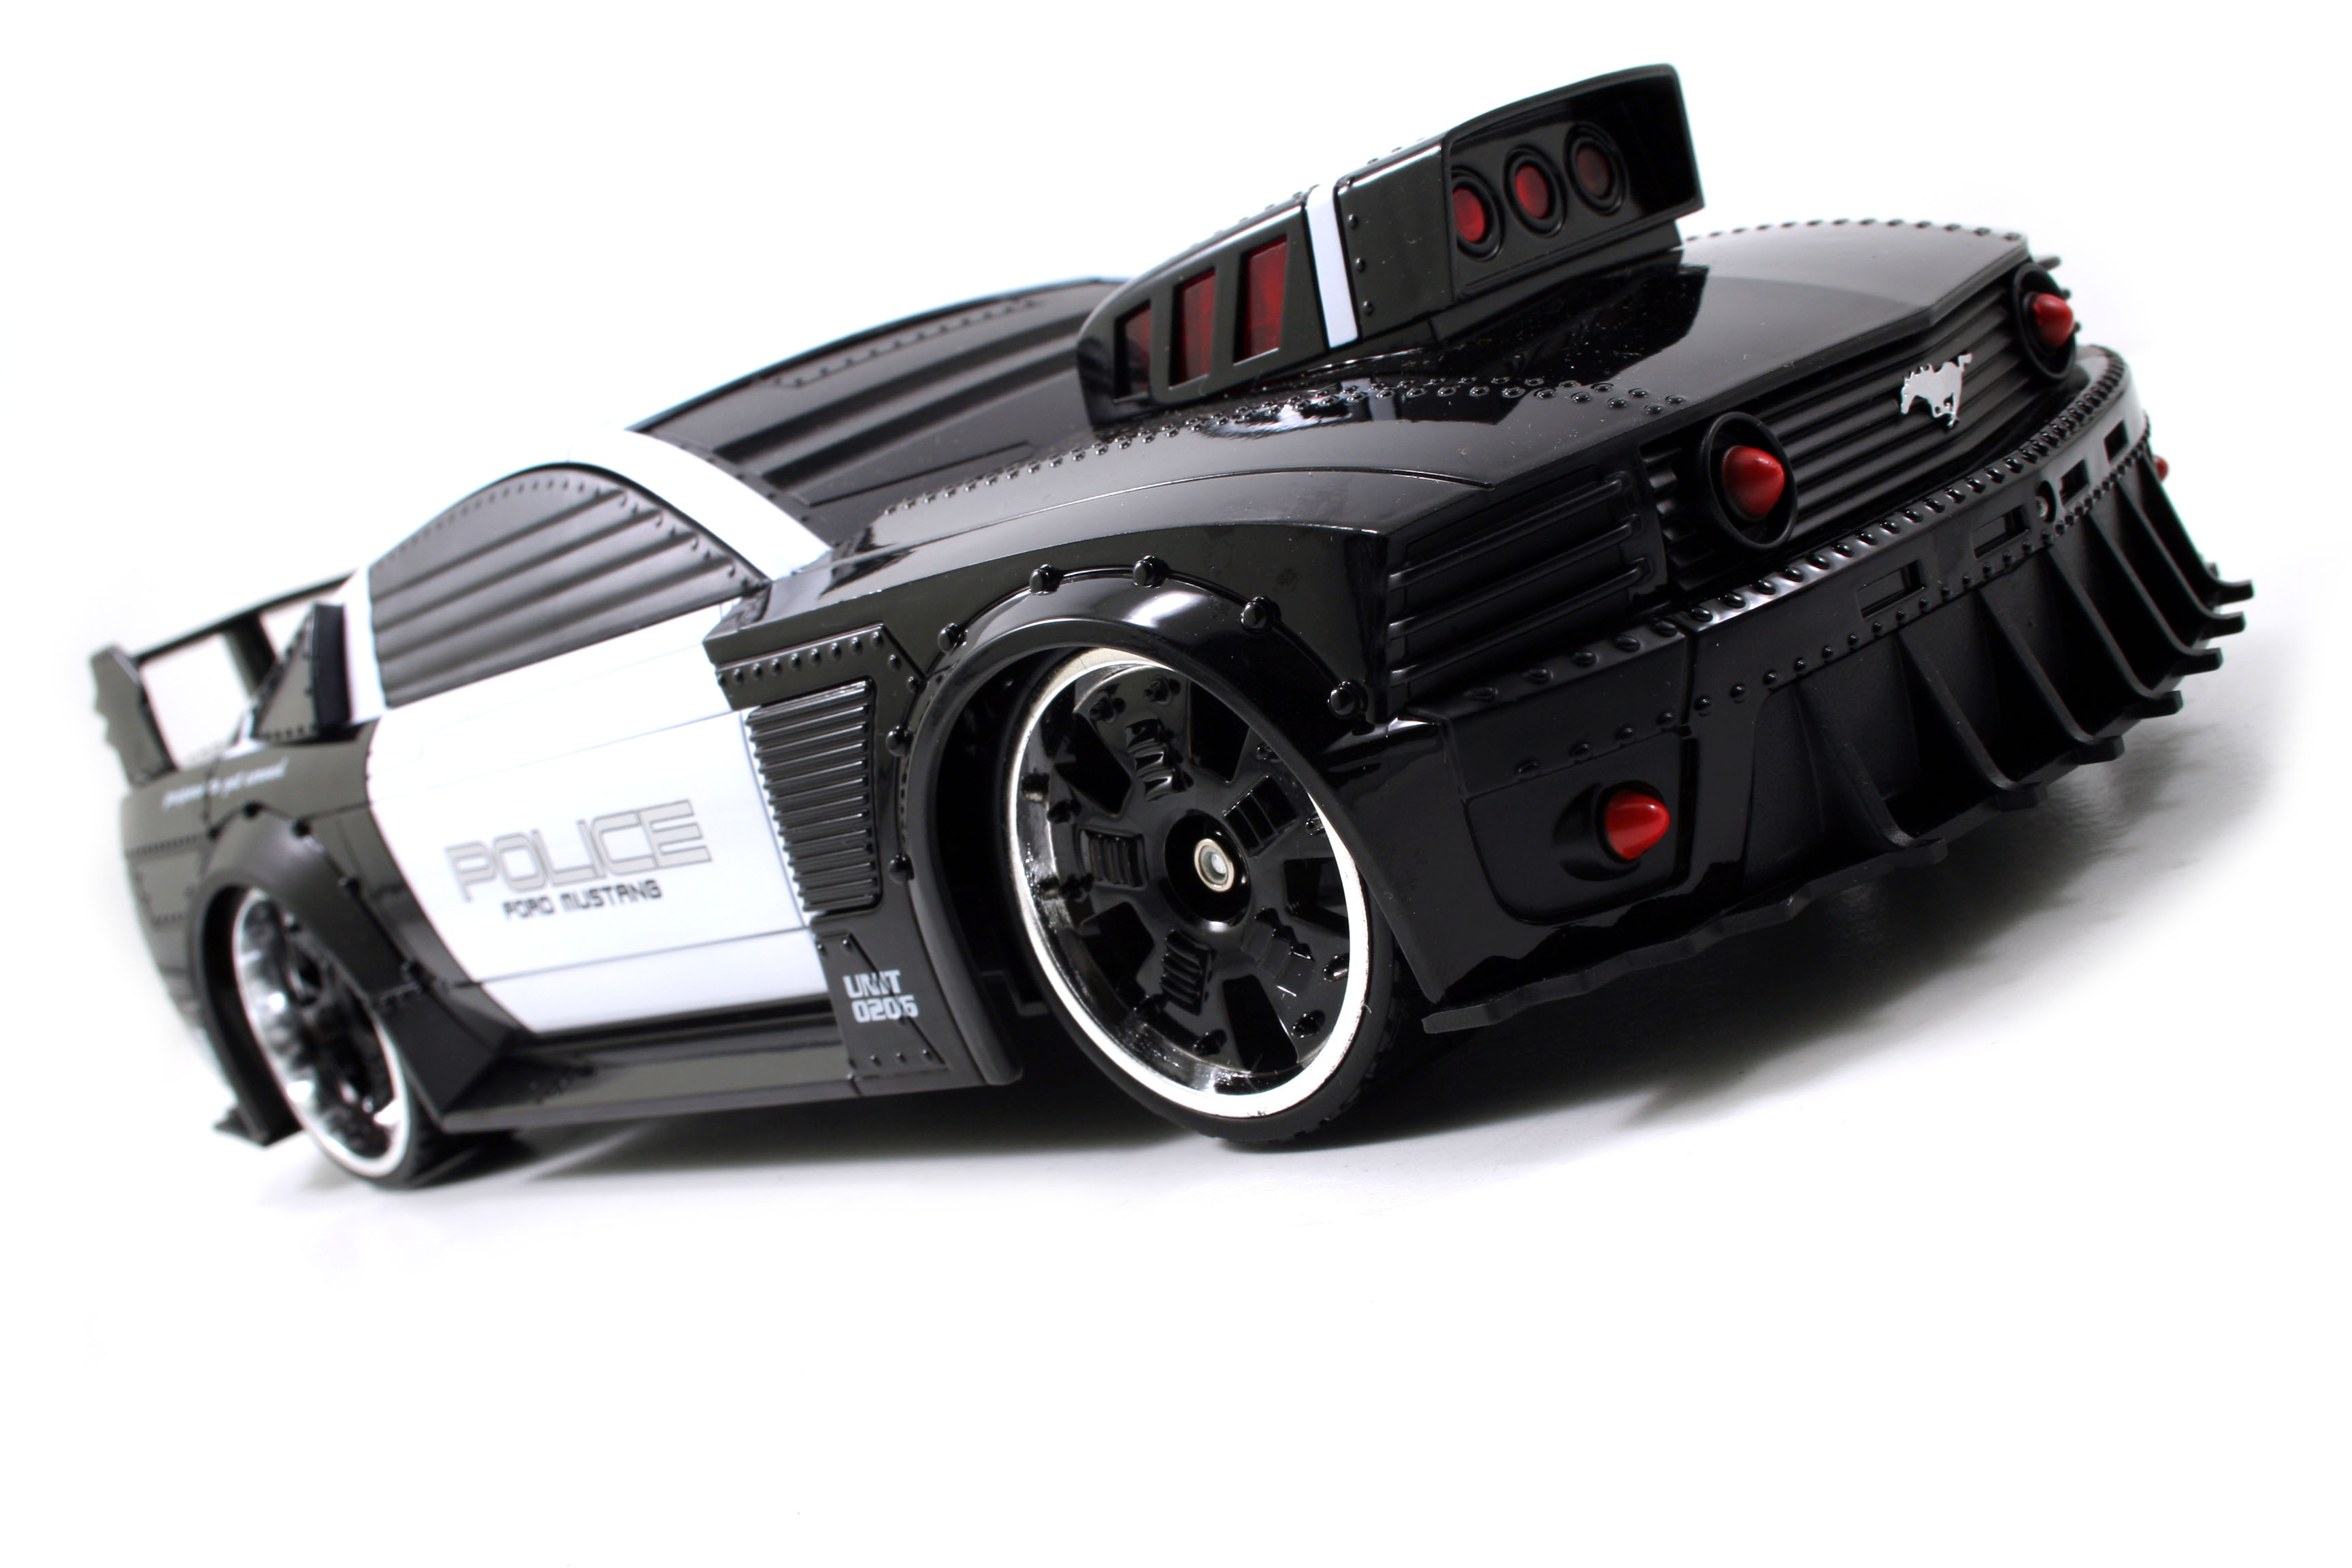 Police Car Website >> Battle Machines RC Brings a Fresh New Play Pattern to ...